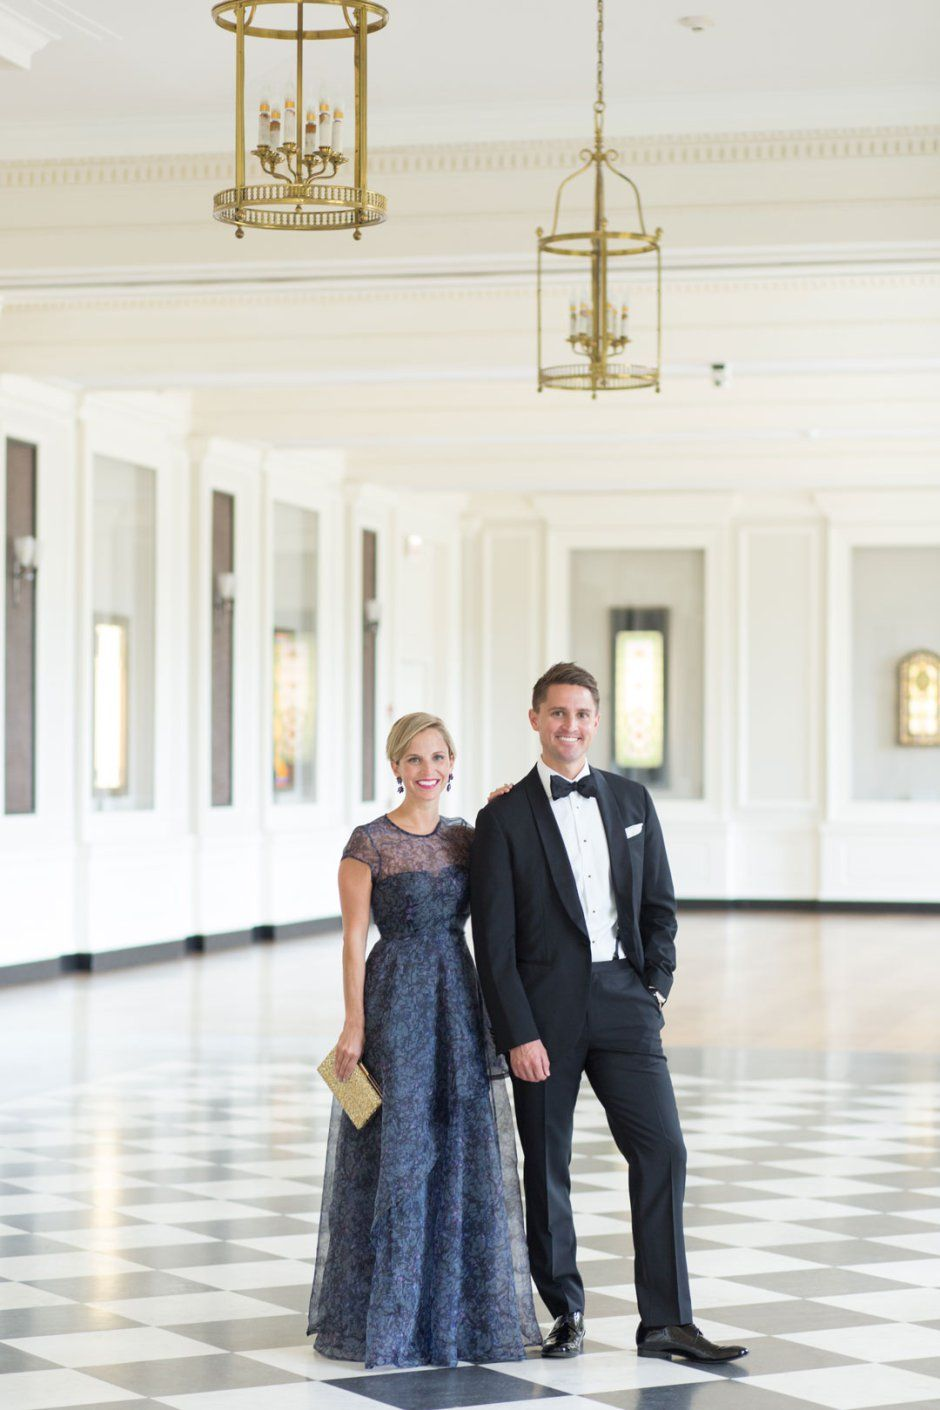 45307b7128 His and Hers Fashion Style for a Black Tie Wedding    Photo by Jennifer  Kathryn Photography